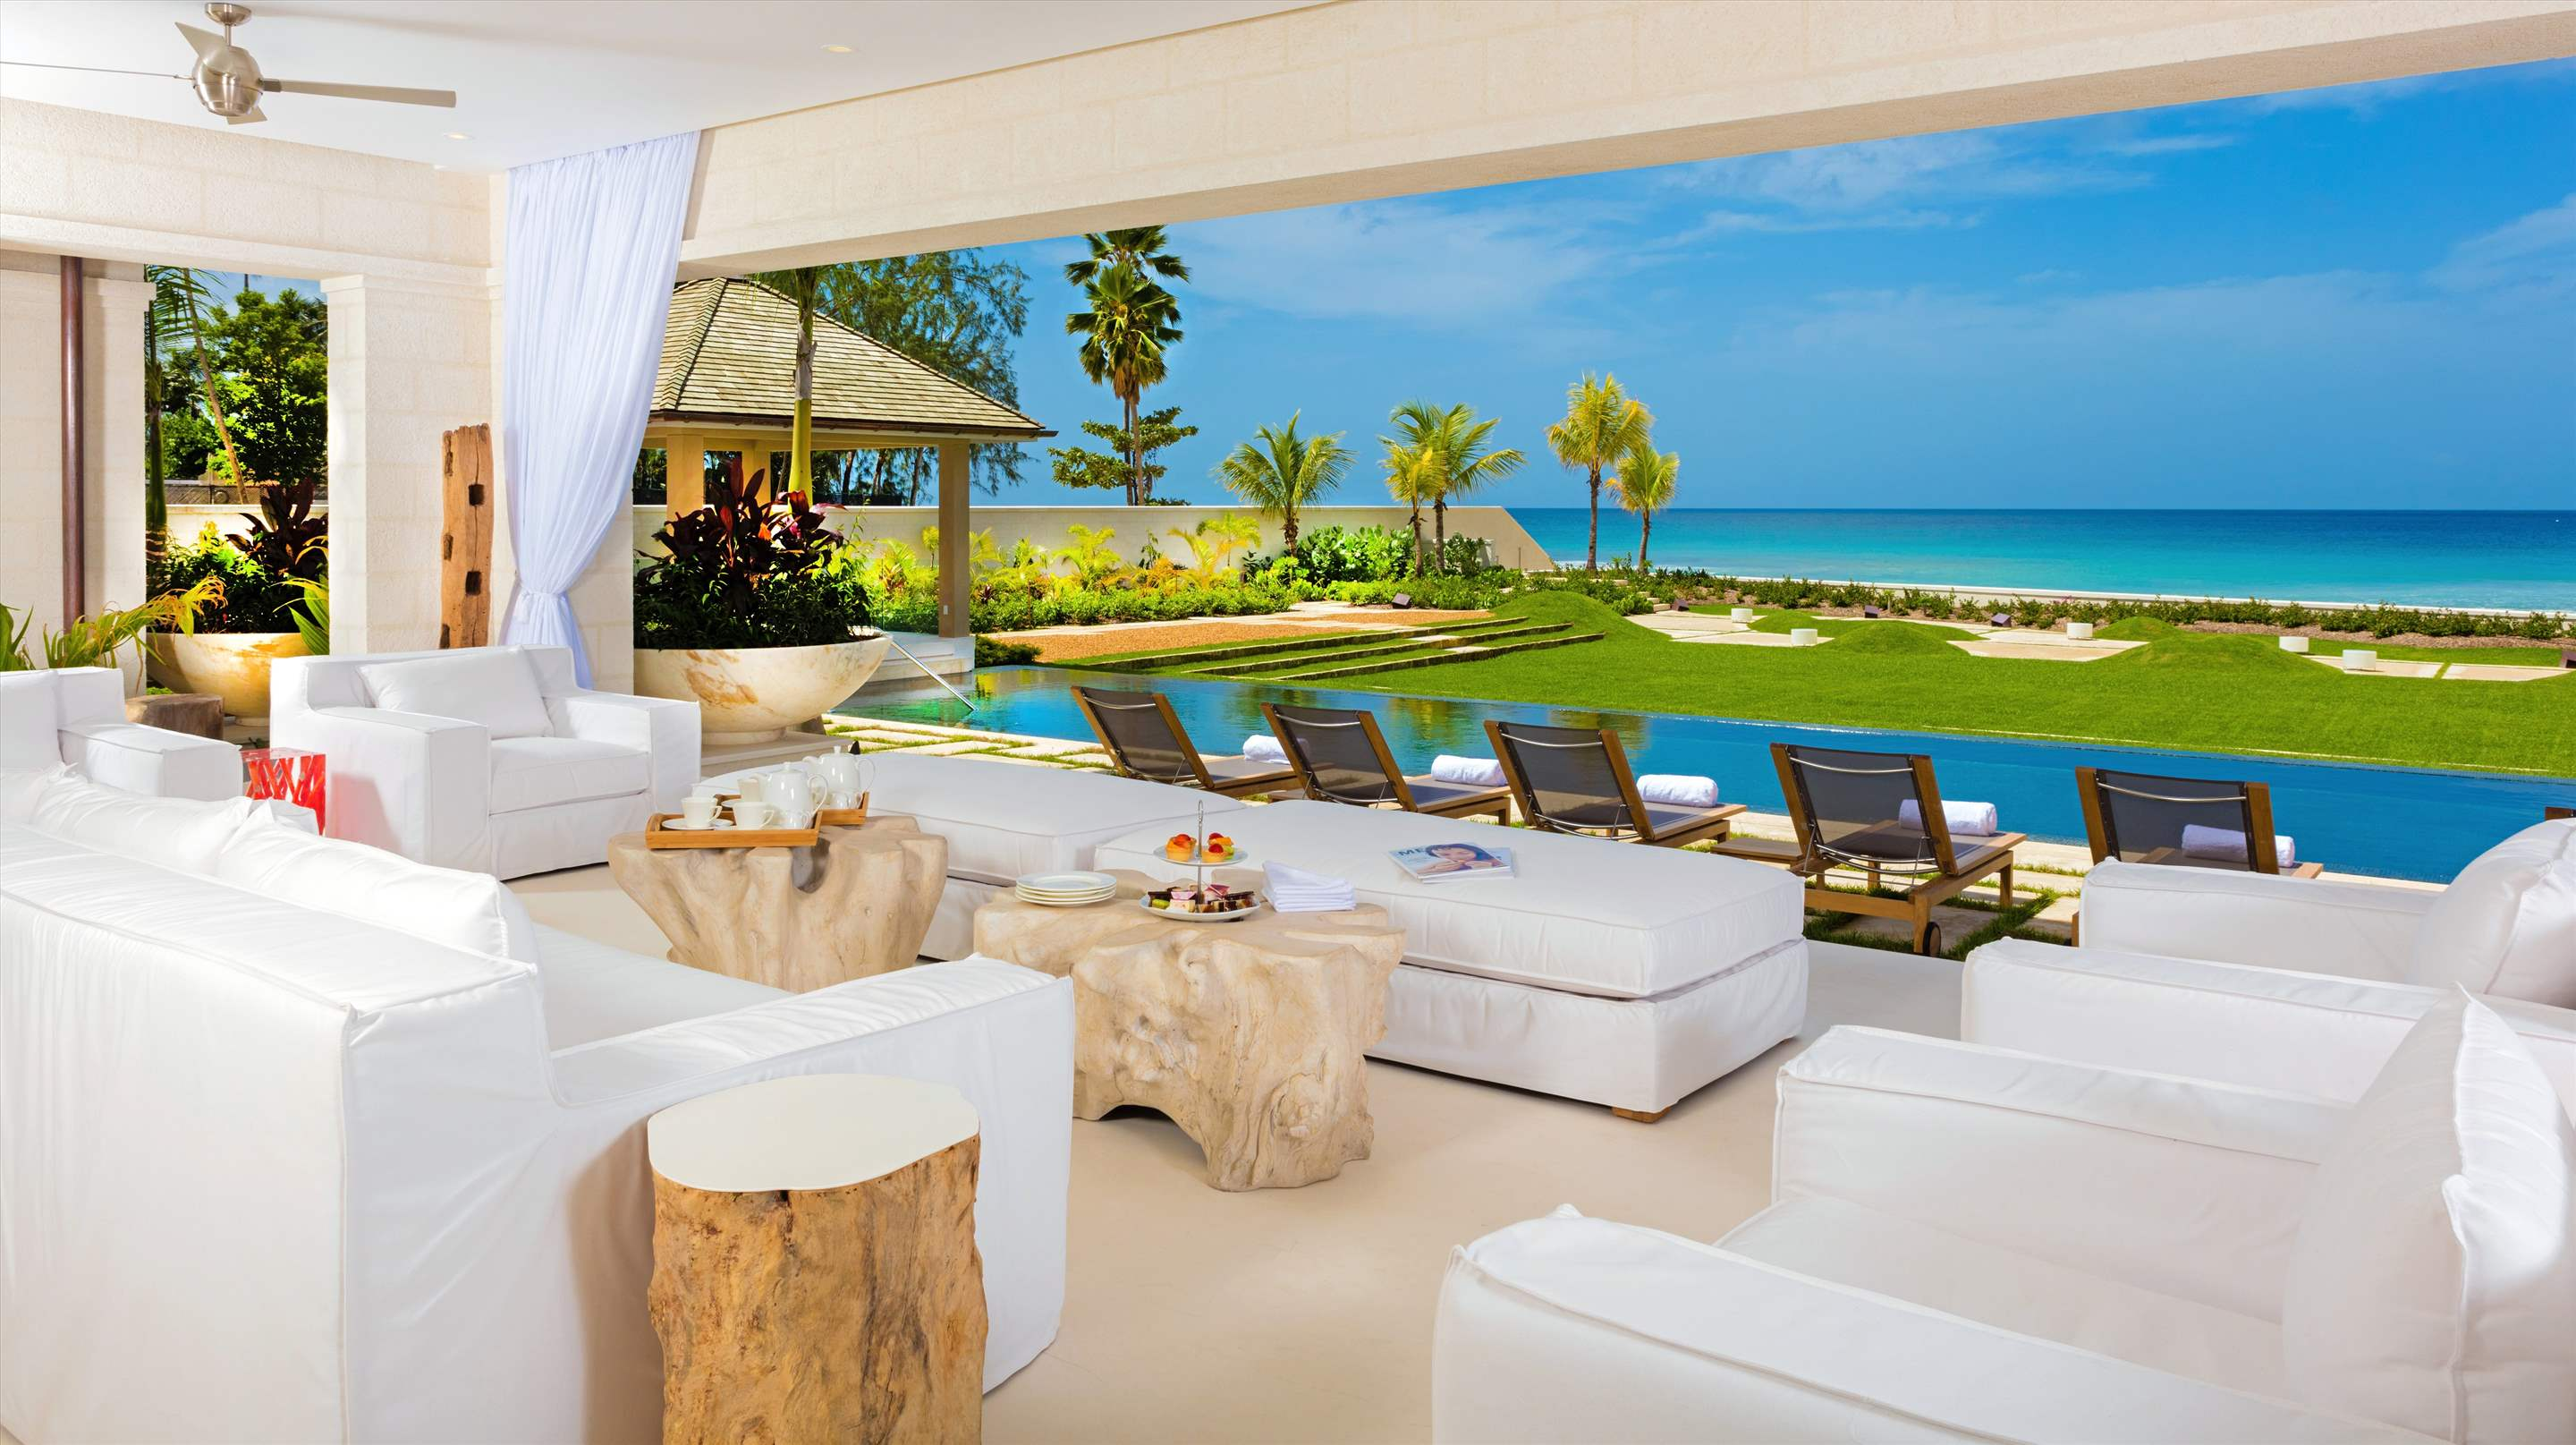 Godings Beach House, 5 bedroom villa in St. James & West Coast, Barbados